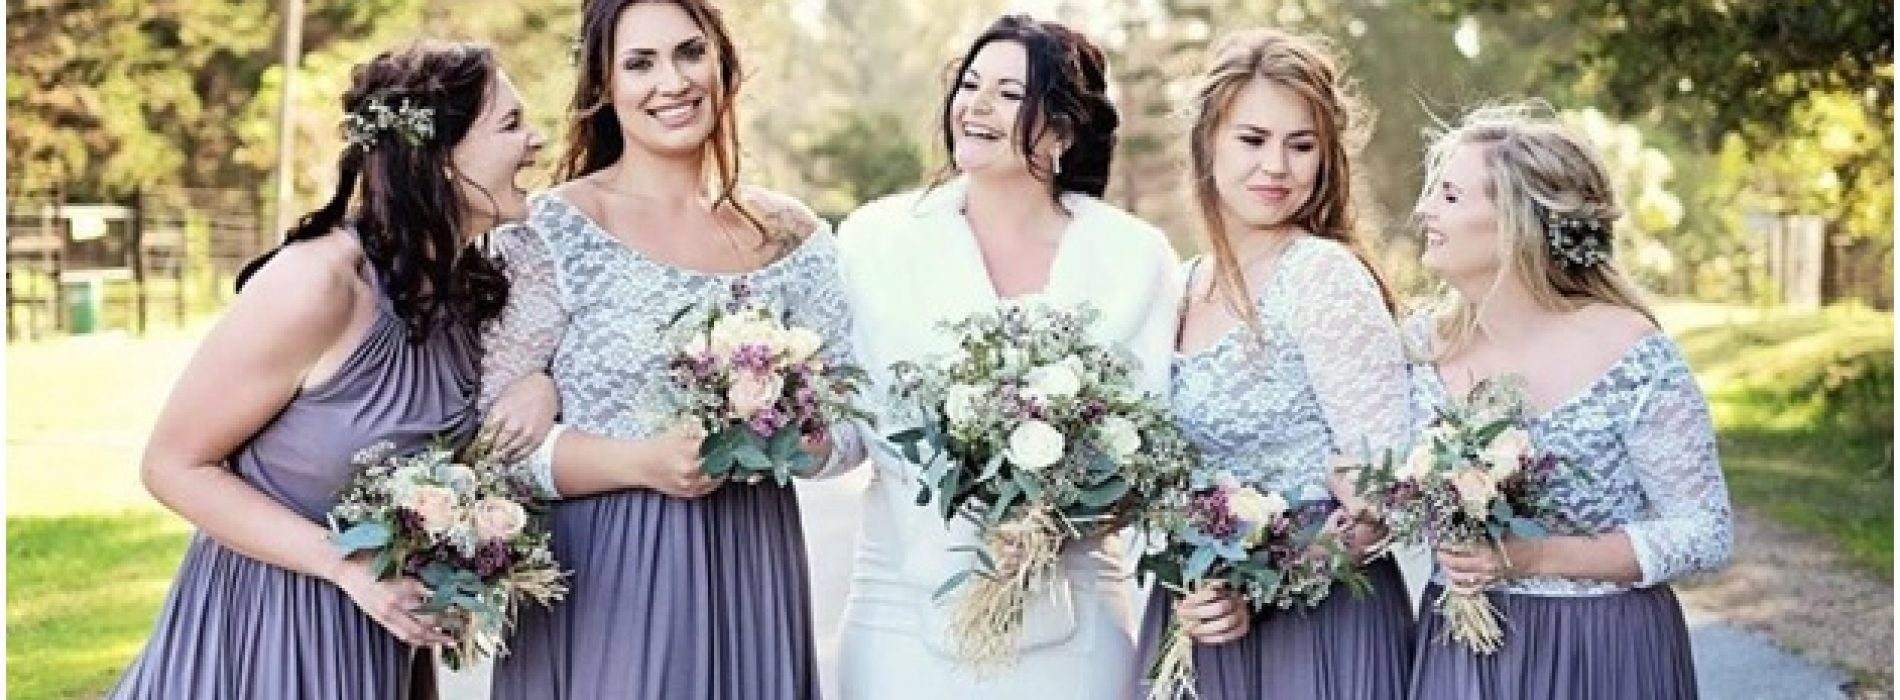 Tips for Choosing a Perfect Bridesmaid Dress